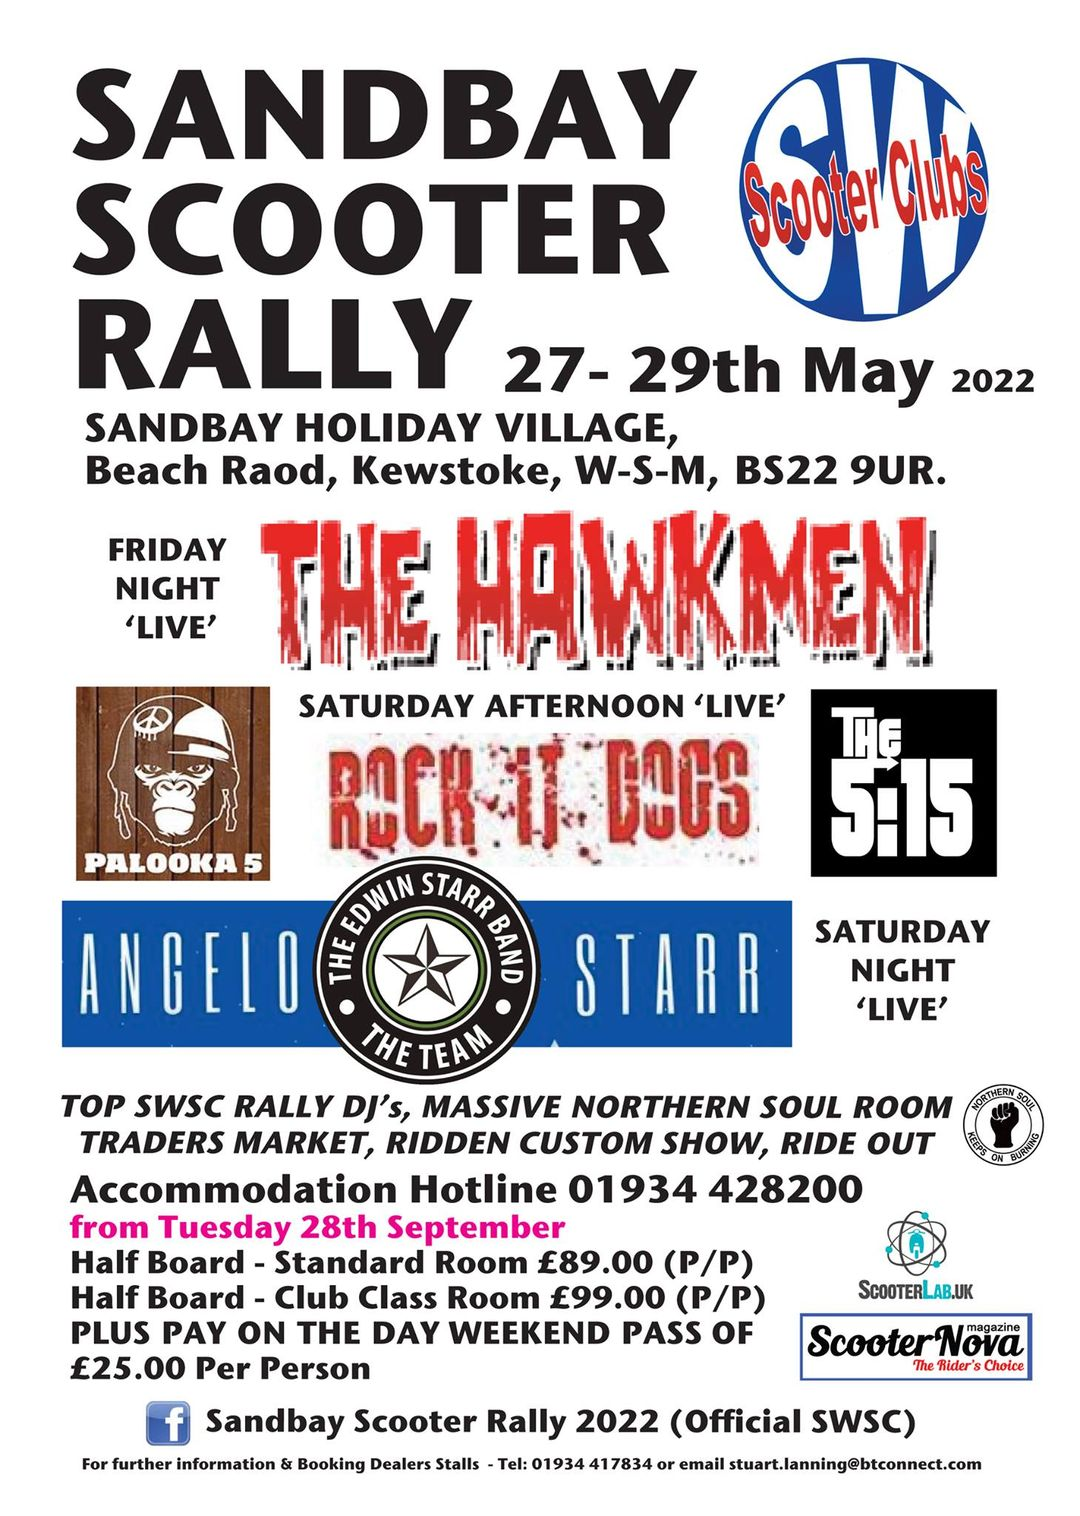 Sand Bay Scooter Rally